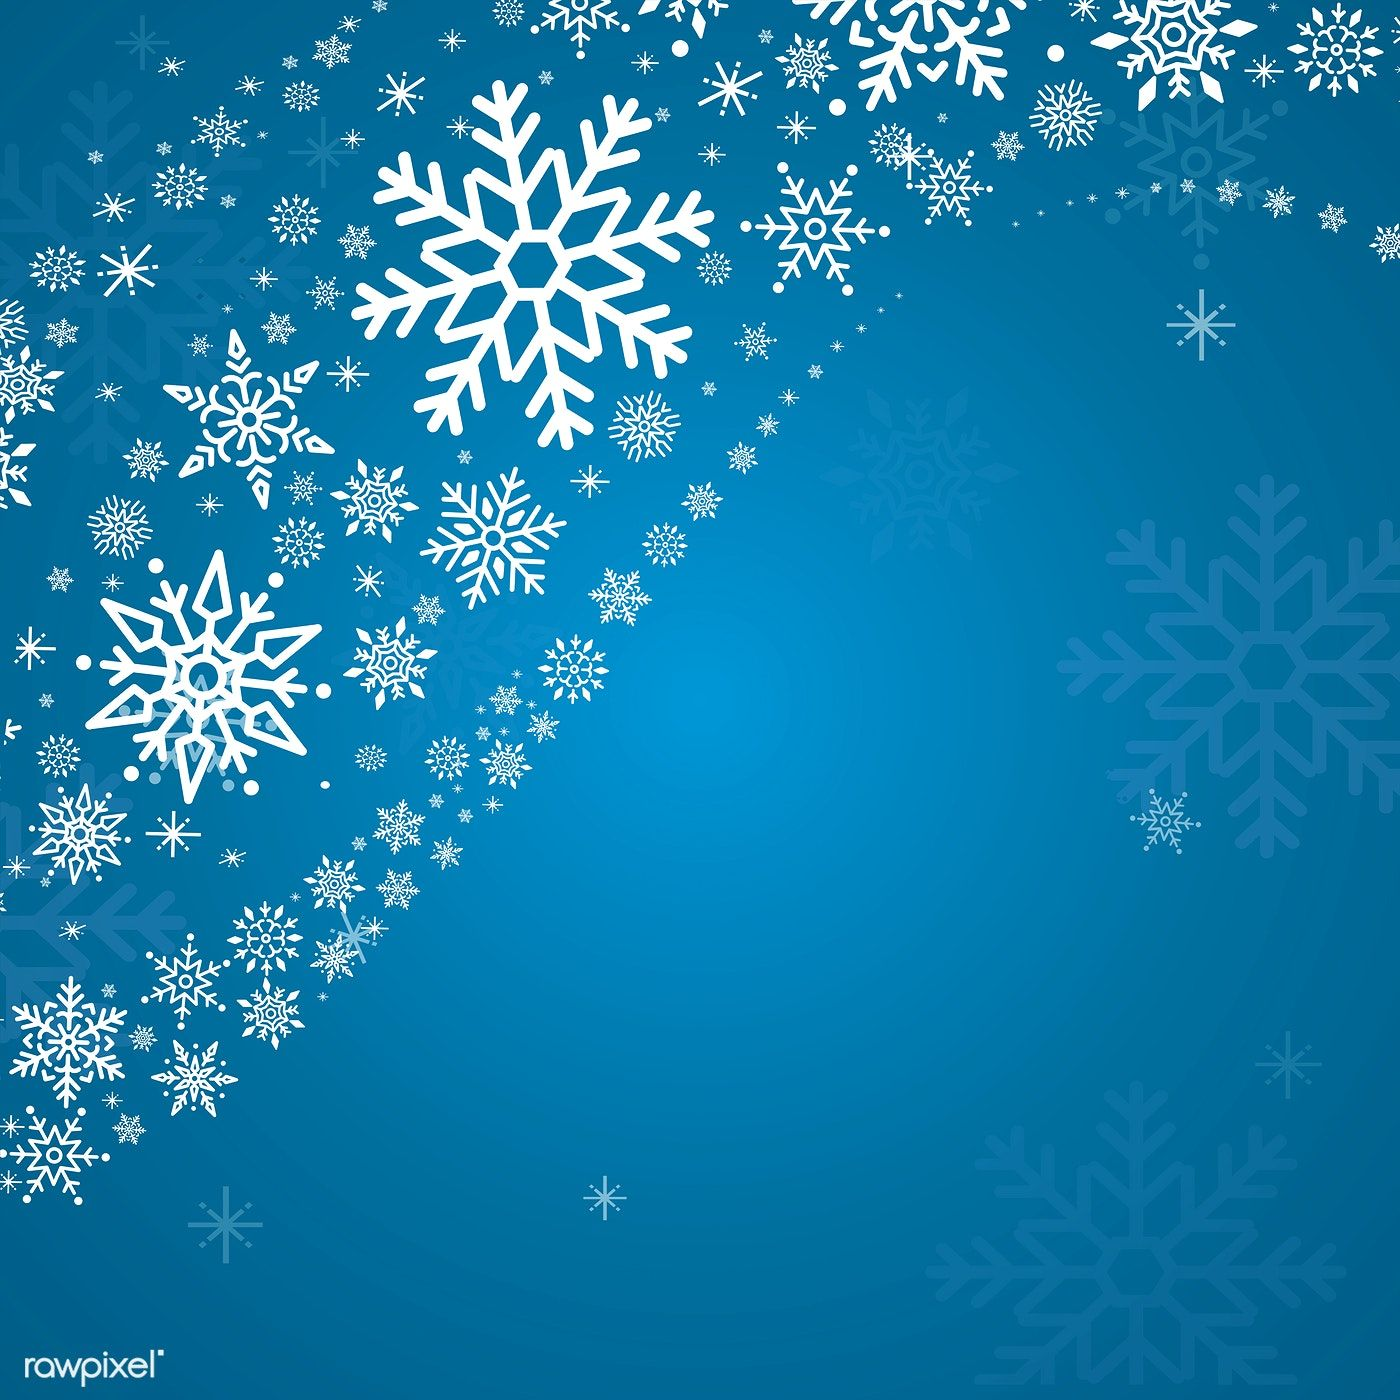 Blue Christmas Winter Holiday Background With Snowflake Vector Free Image By Rawpixel Com